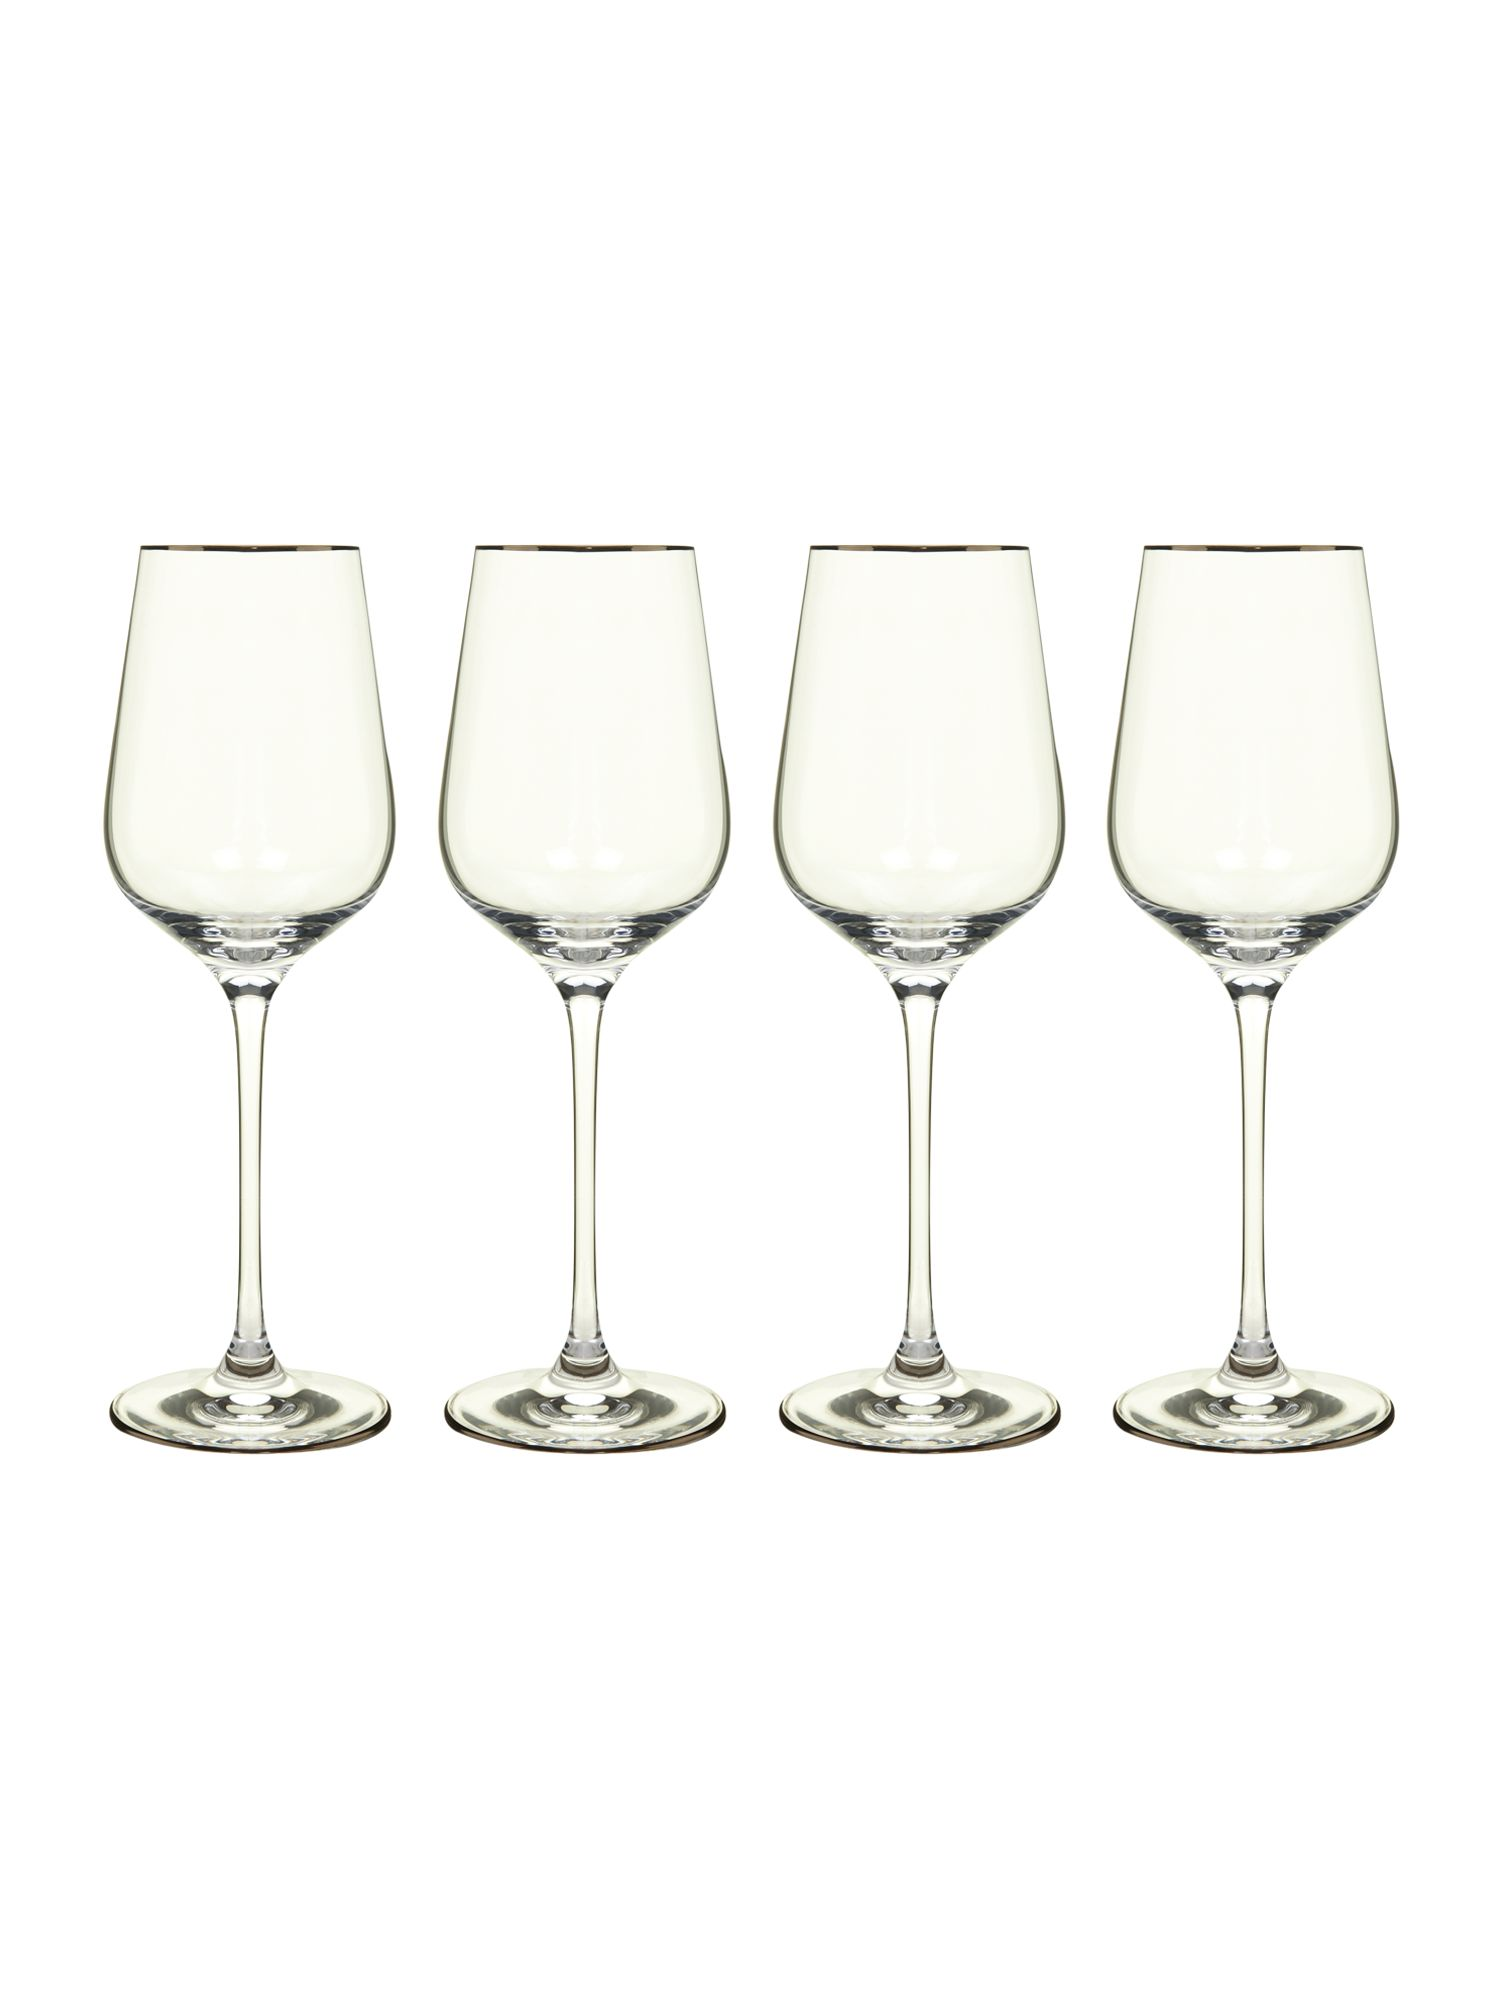 Platinum white wine set of 4